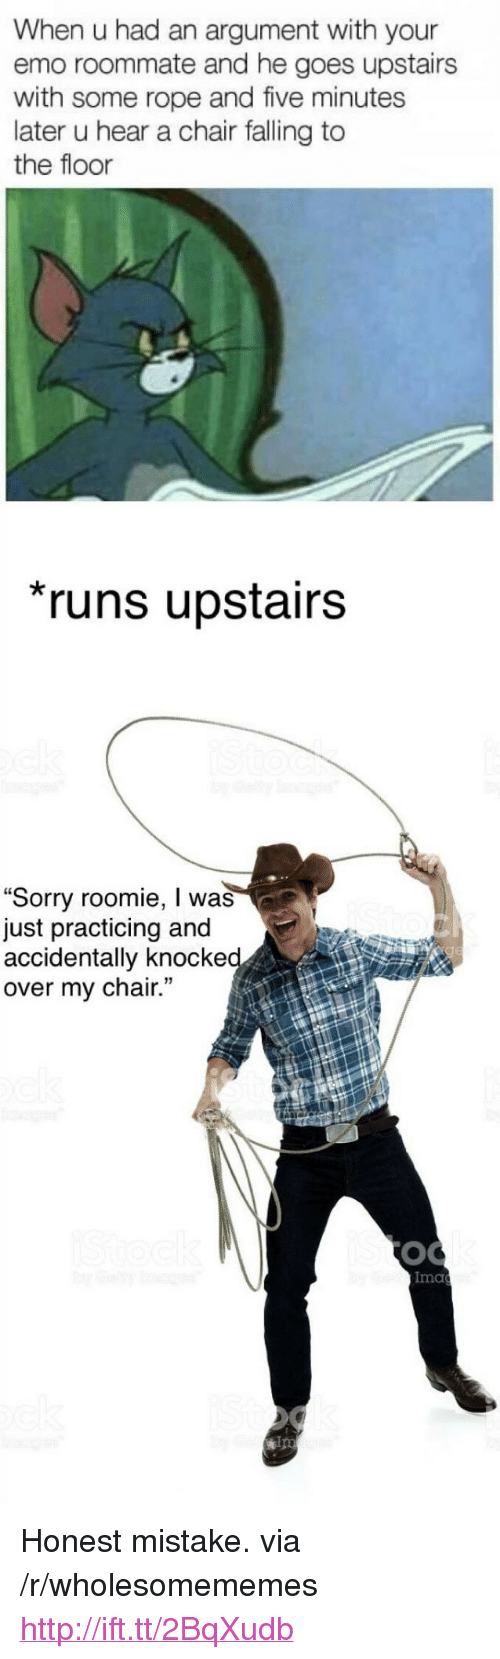 """Emo, Roommate, and Sorry: When u had an argument with your  emo roommate and he goes upstairs  with some rope and five minutes  later u hear a chair falling to  the floor  runs upstairs  """"Sorry roomie, I was  just practicing and  accidentally knocke  over my chair.  Ima  ips <p>Honest mistake. via /r/wholesomememes <a href=""""http://ift.tt/2BqXudb"""">http://ift.tt/2BqXudb</a></p>"""